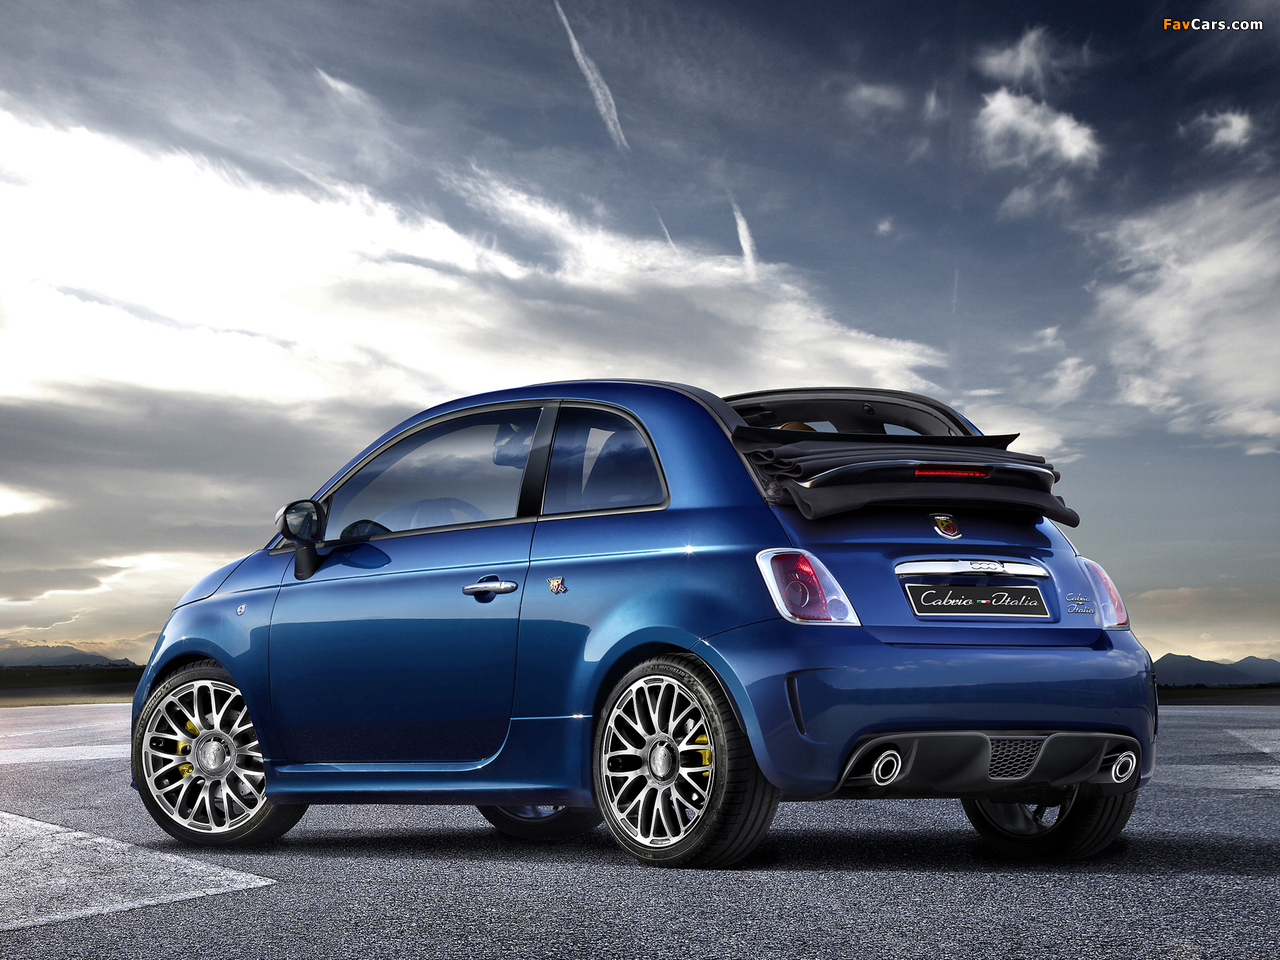 abarth 500c cabrio italia 2011 wallpapers 1280x960. Black Bedroom Furniture Sets. Home Design Ideas